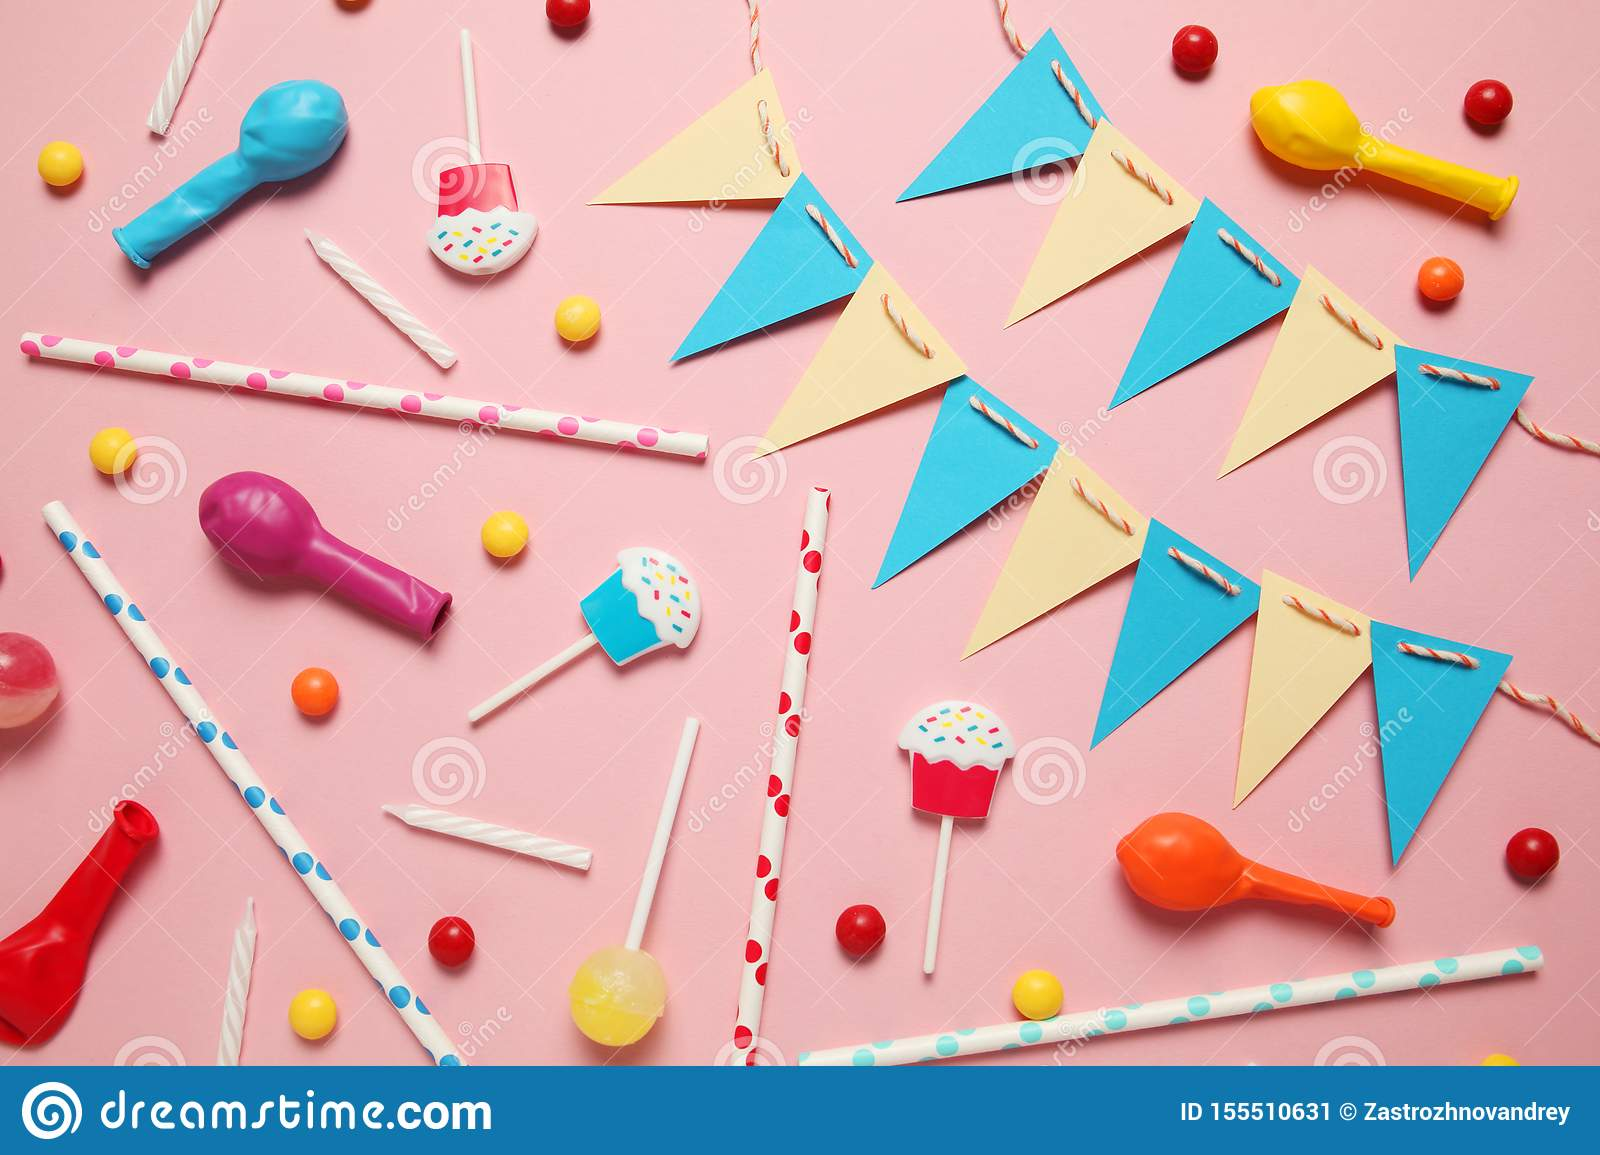 Happy birthday party items, flat lay pattern